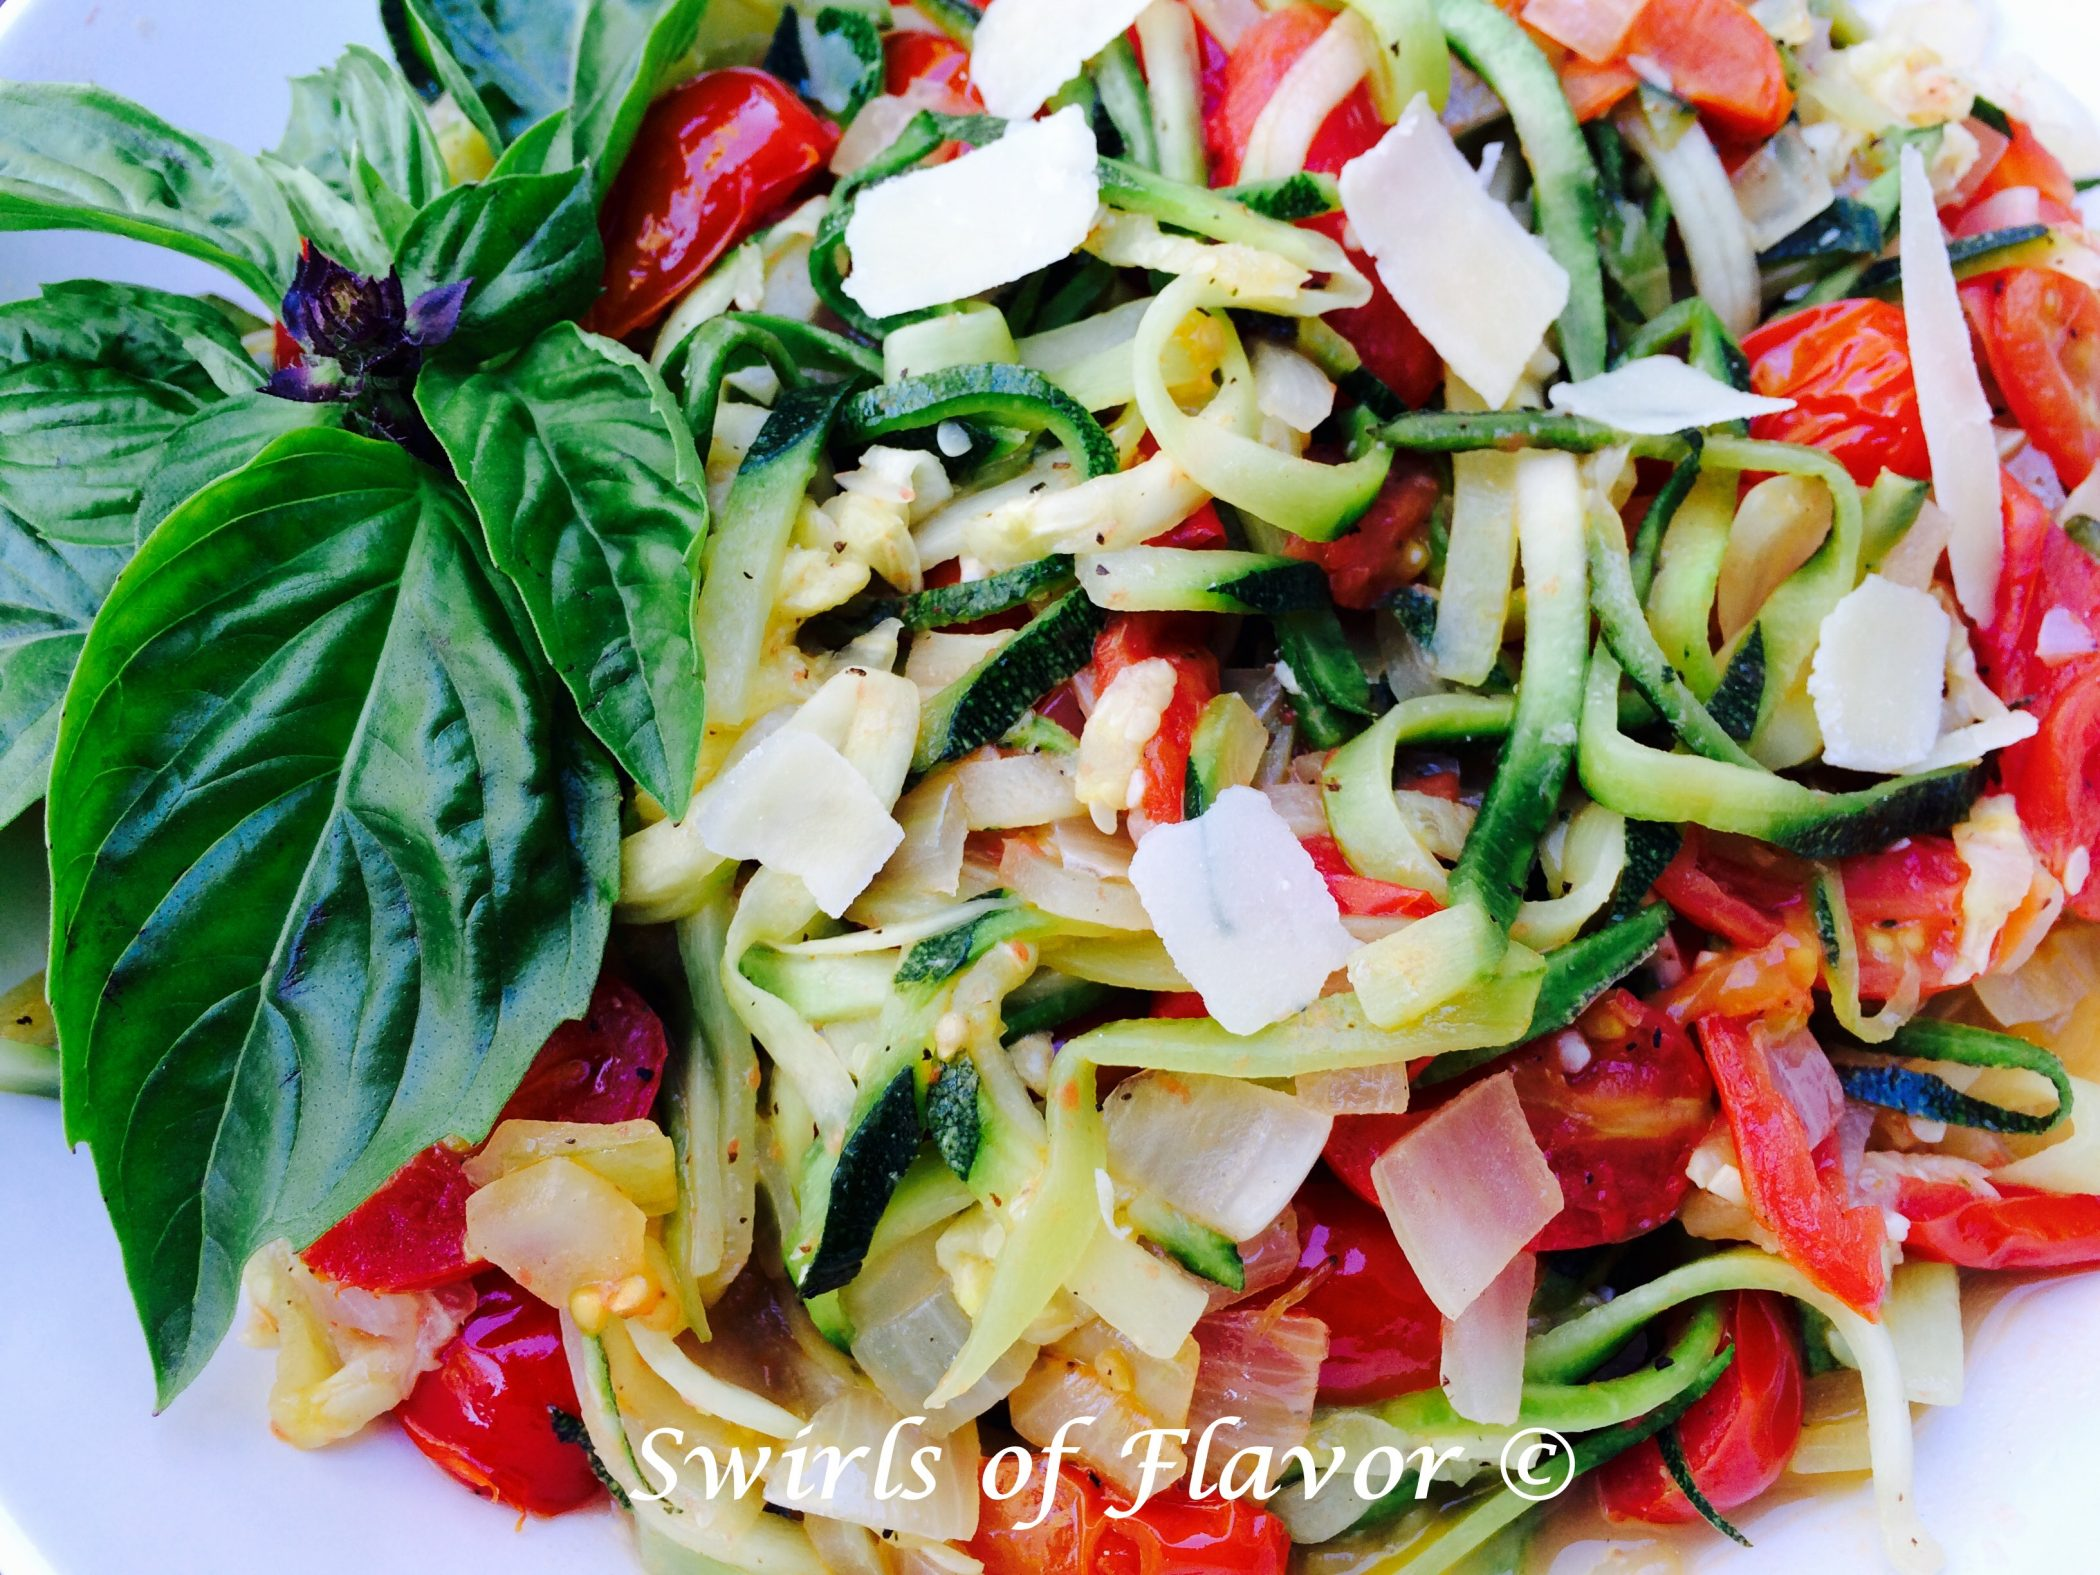 zucchini noodles recipe with tomatoes and fresh basil leaves